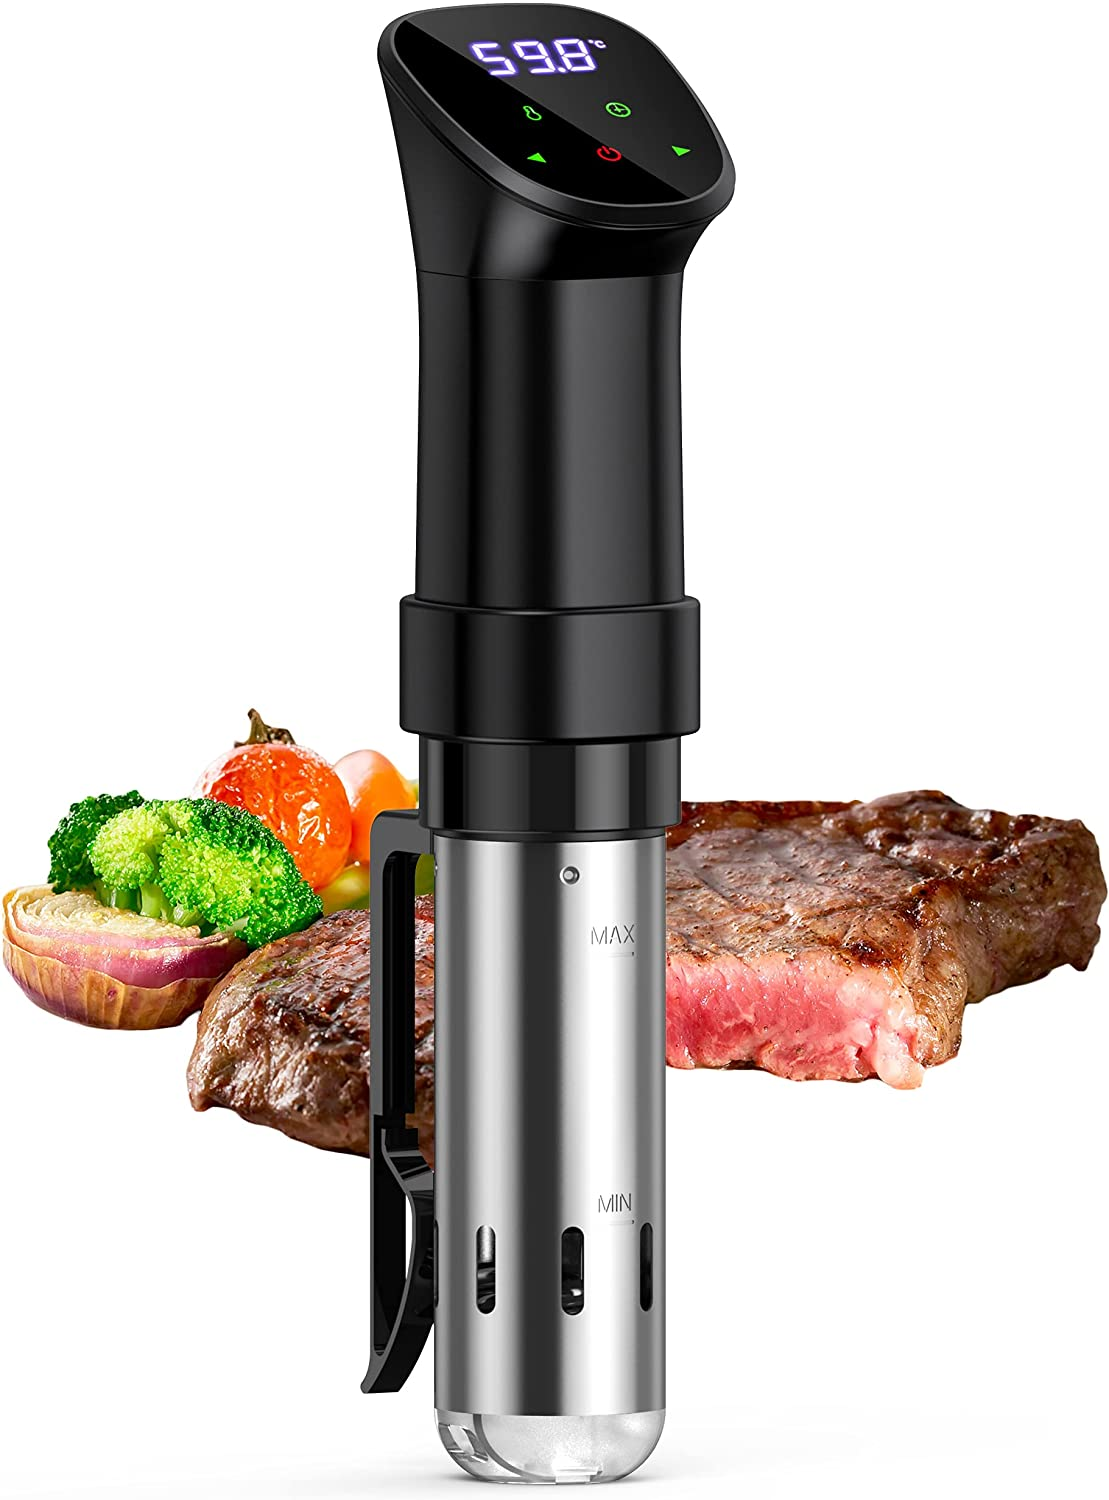 UNIROI Sous Vide Cooker, 1000 Watts Instant Pot Slim Water Cooker Suvee vide Machine Precision Cooker and Immersion Circulator -Black, Normal